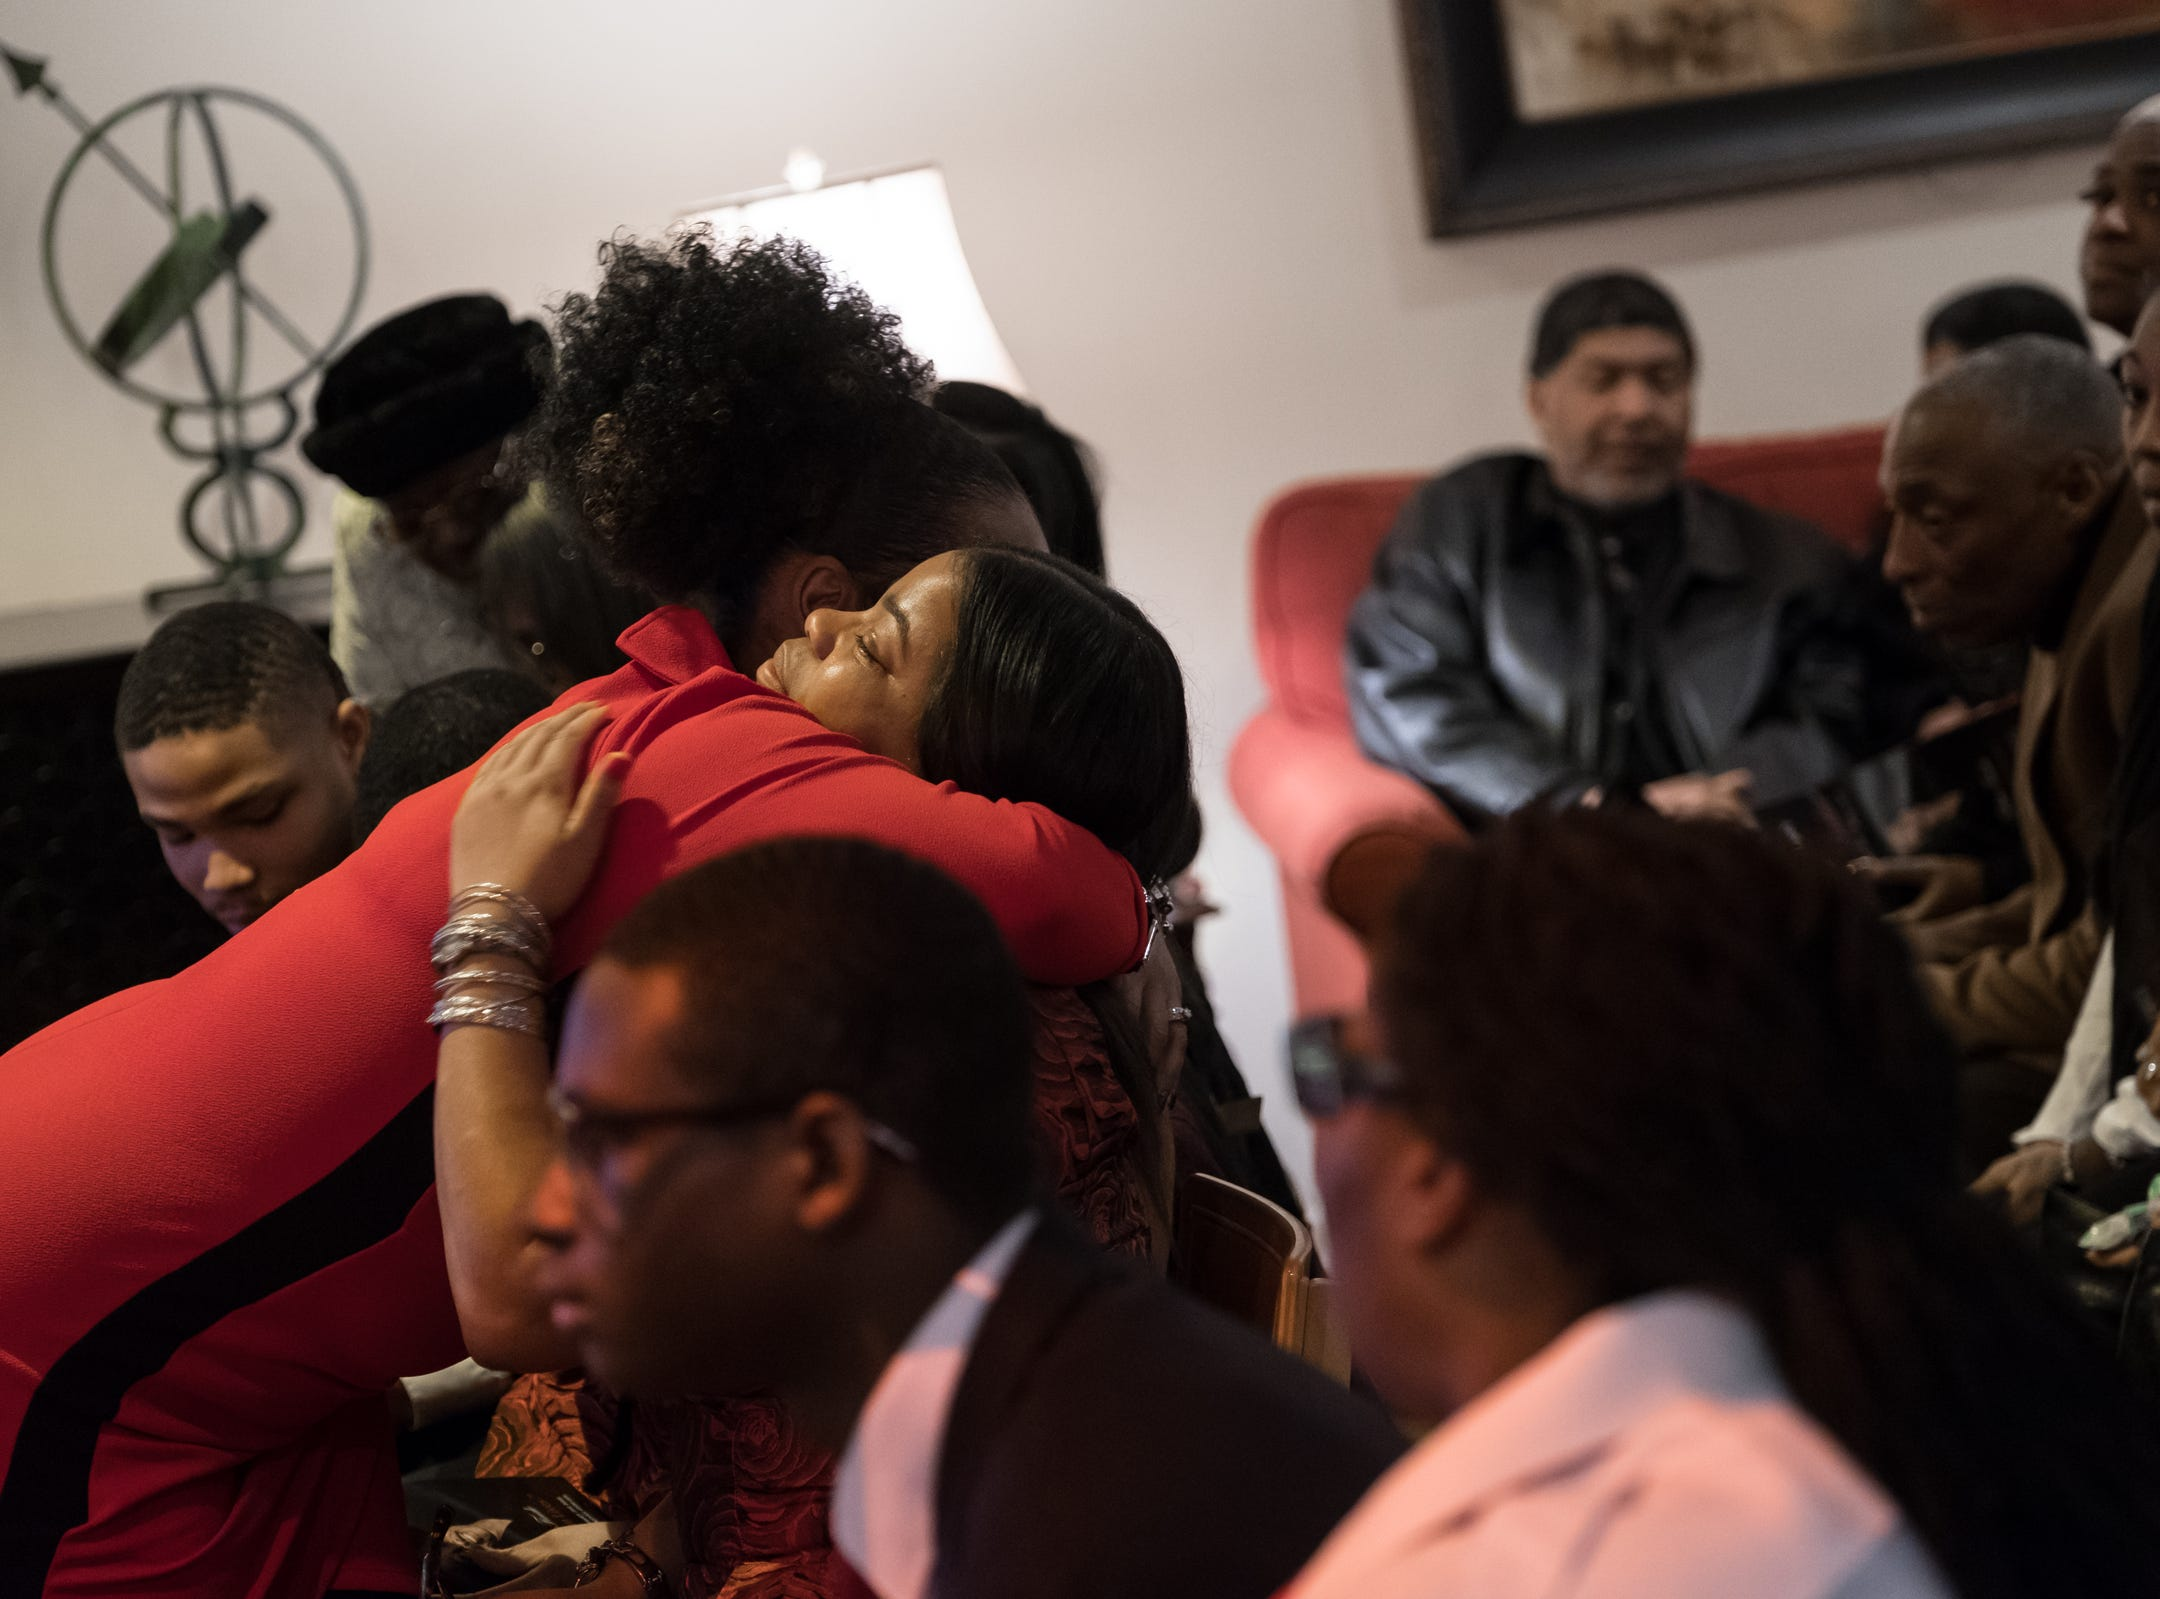 Misty Sharp of Detroit is hugged during the funeral of her father Rudy Barker at Hutchison Funeral Home in Detroit on Monday, January 21, 2019. Barker was known for his impressions of late civil rights leader Martin Luther King Jr. and was buried on the national holiday honoring his hero.